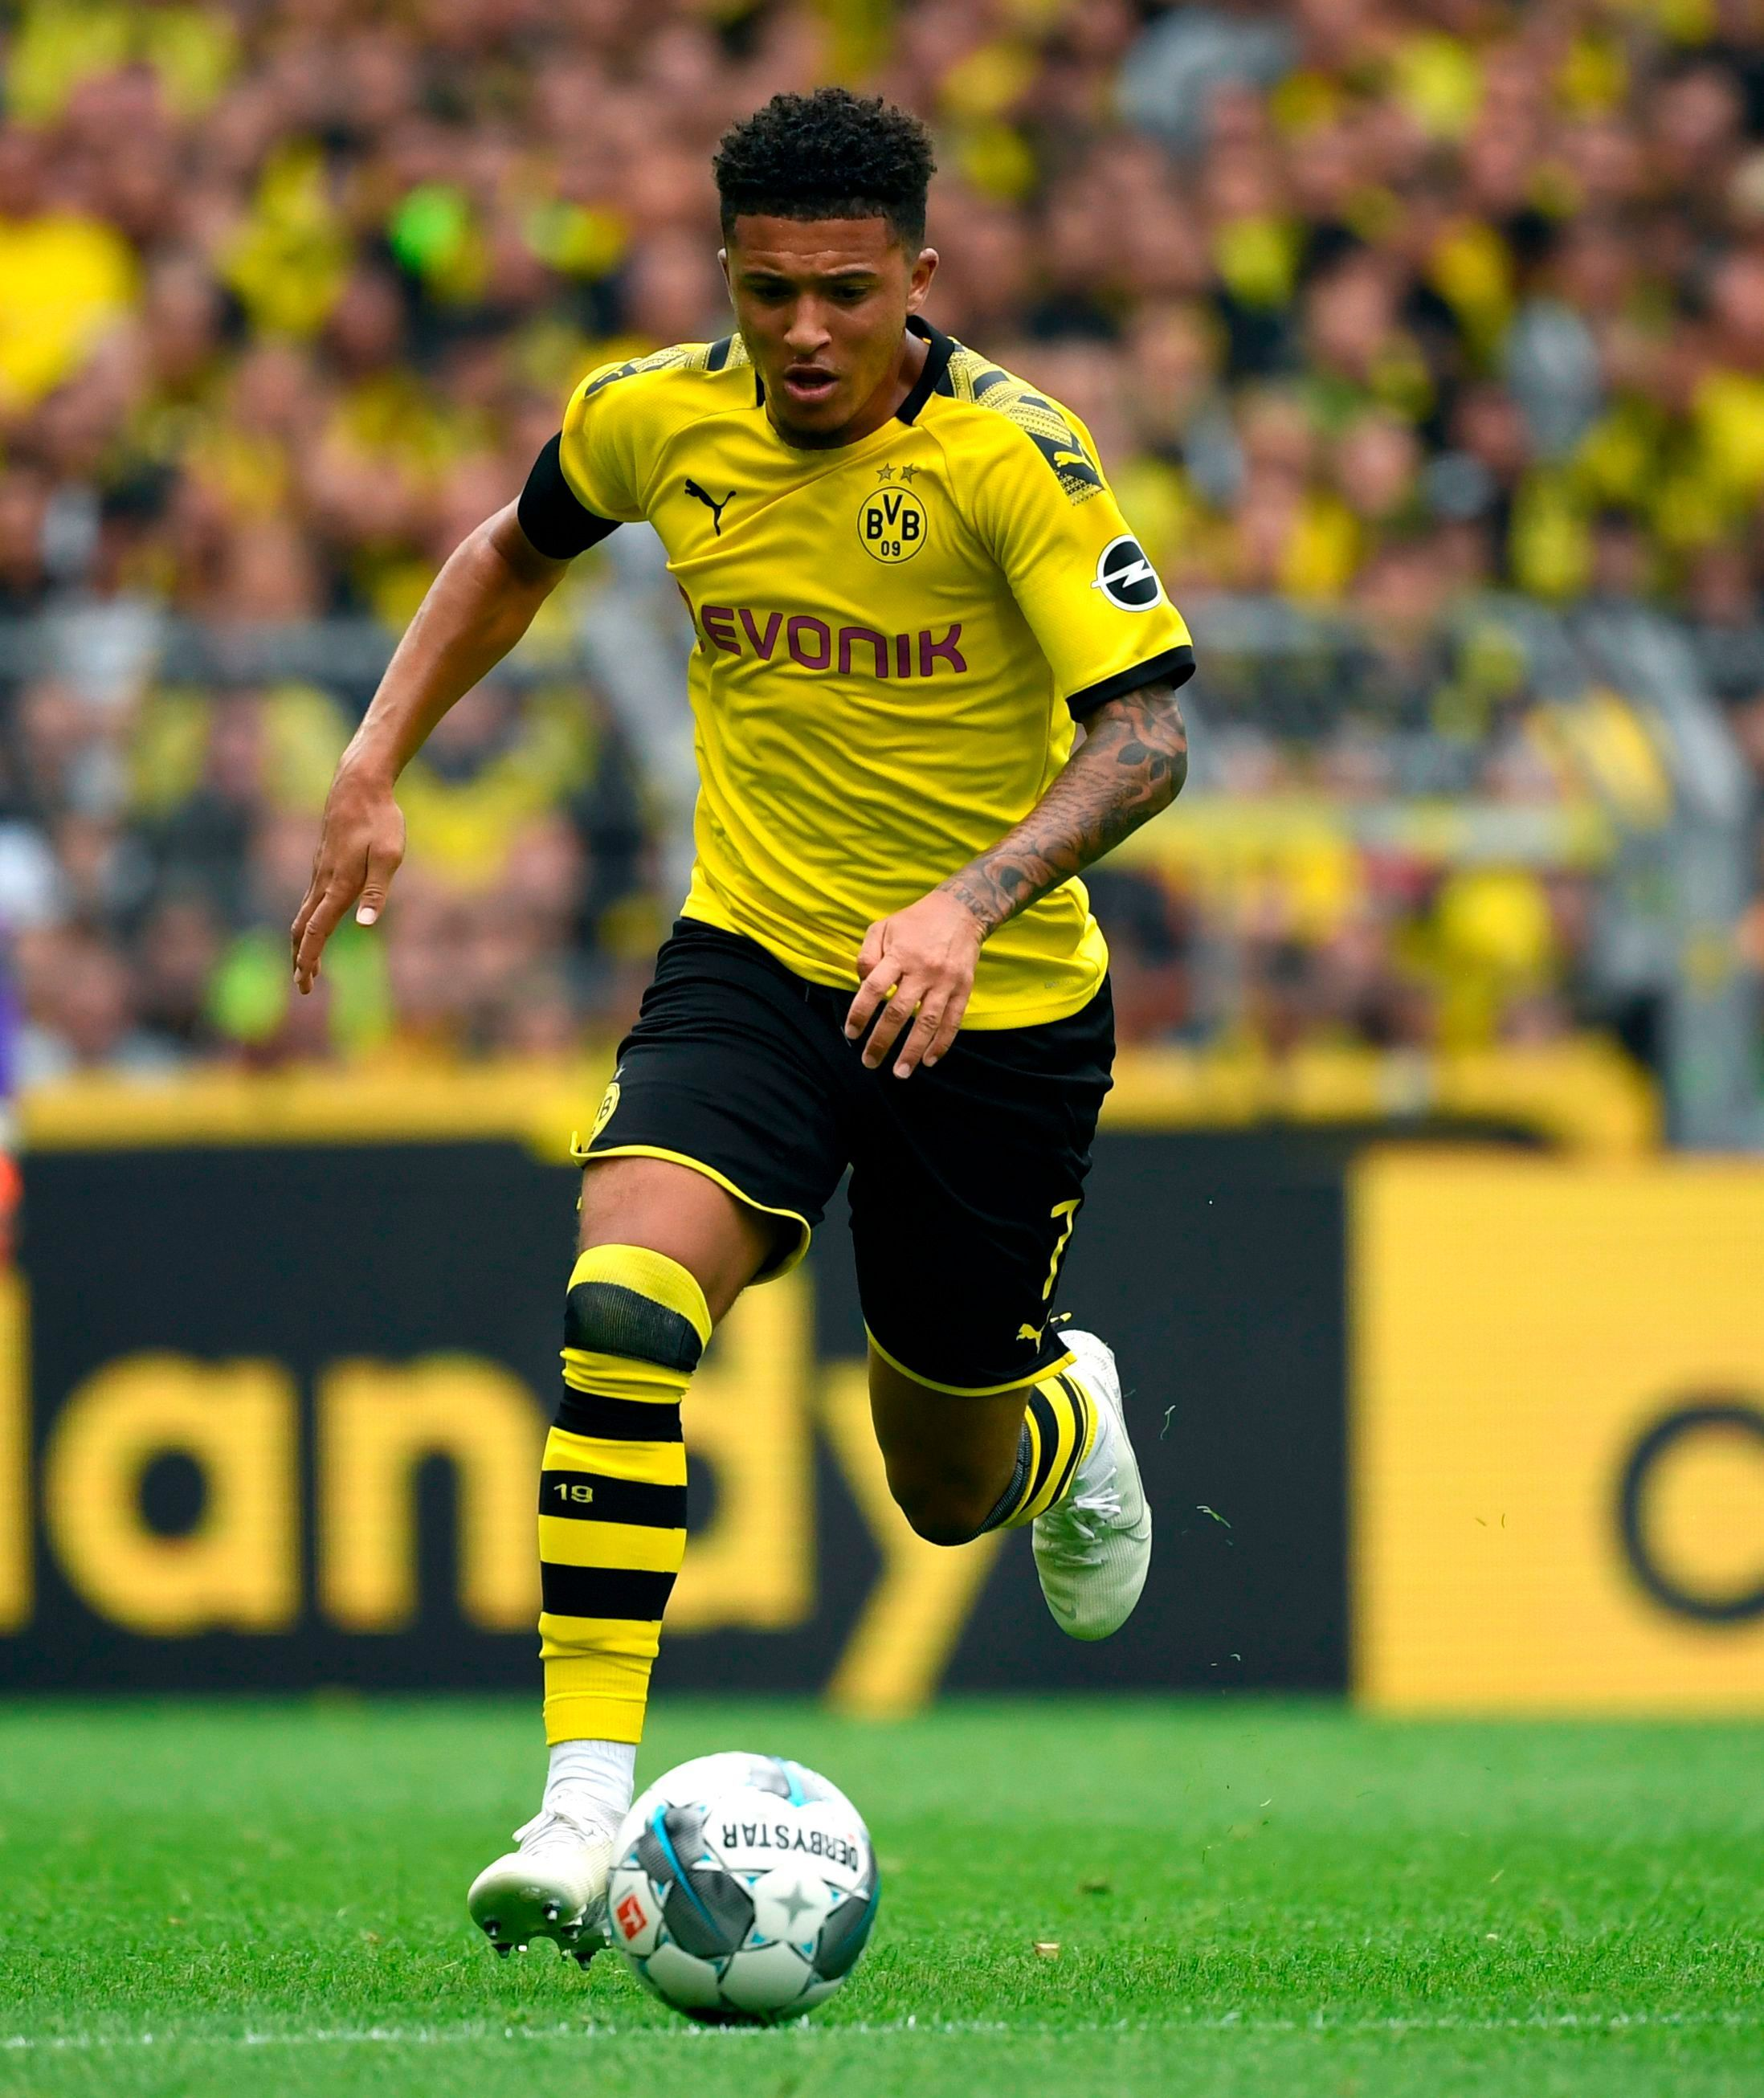 Jadon Sancho Transfer How Could Borussia Dortmund Teenager Fit In At His Next Club In In 2020 Chelsea Liverpool Manchester United Chelsea Liverpool Manchester United